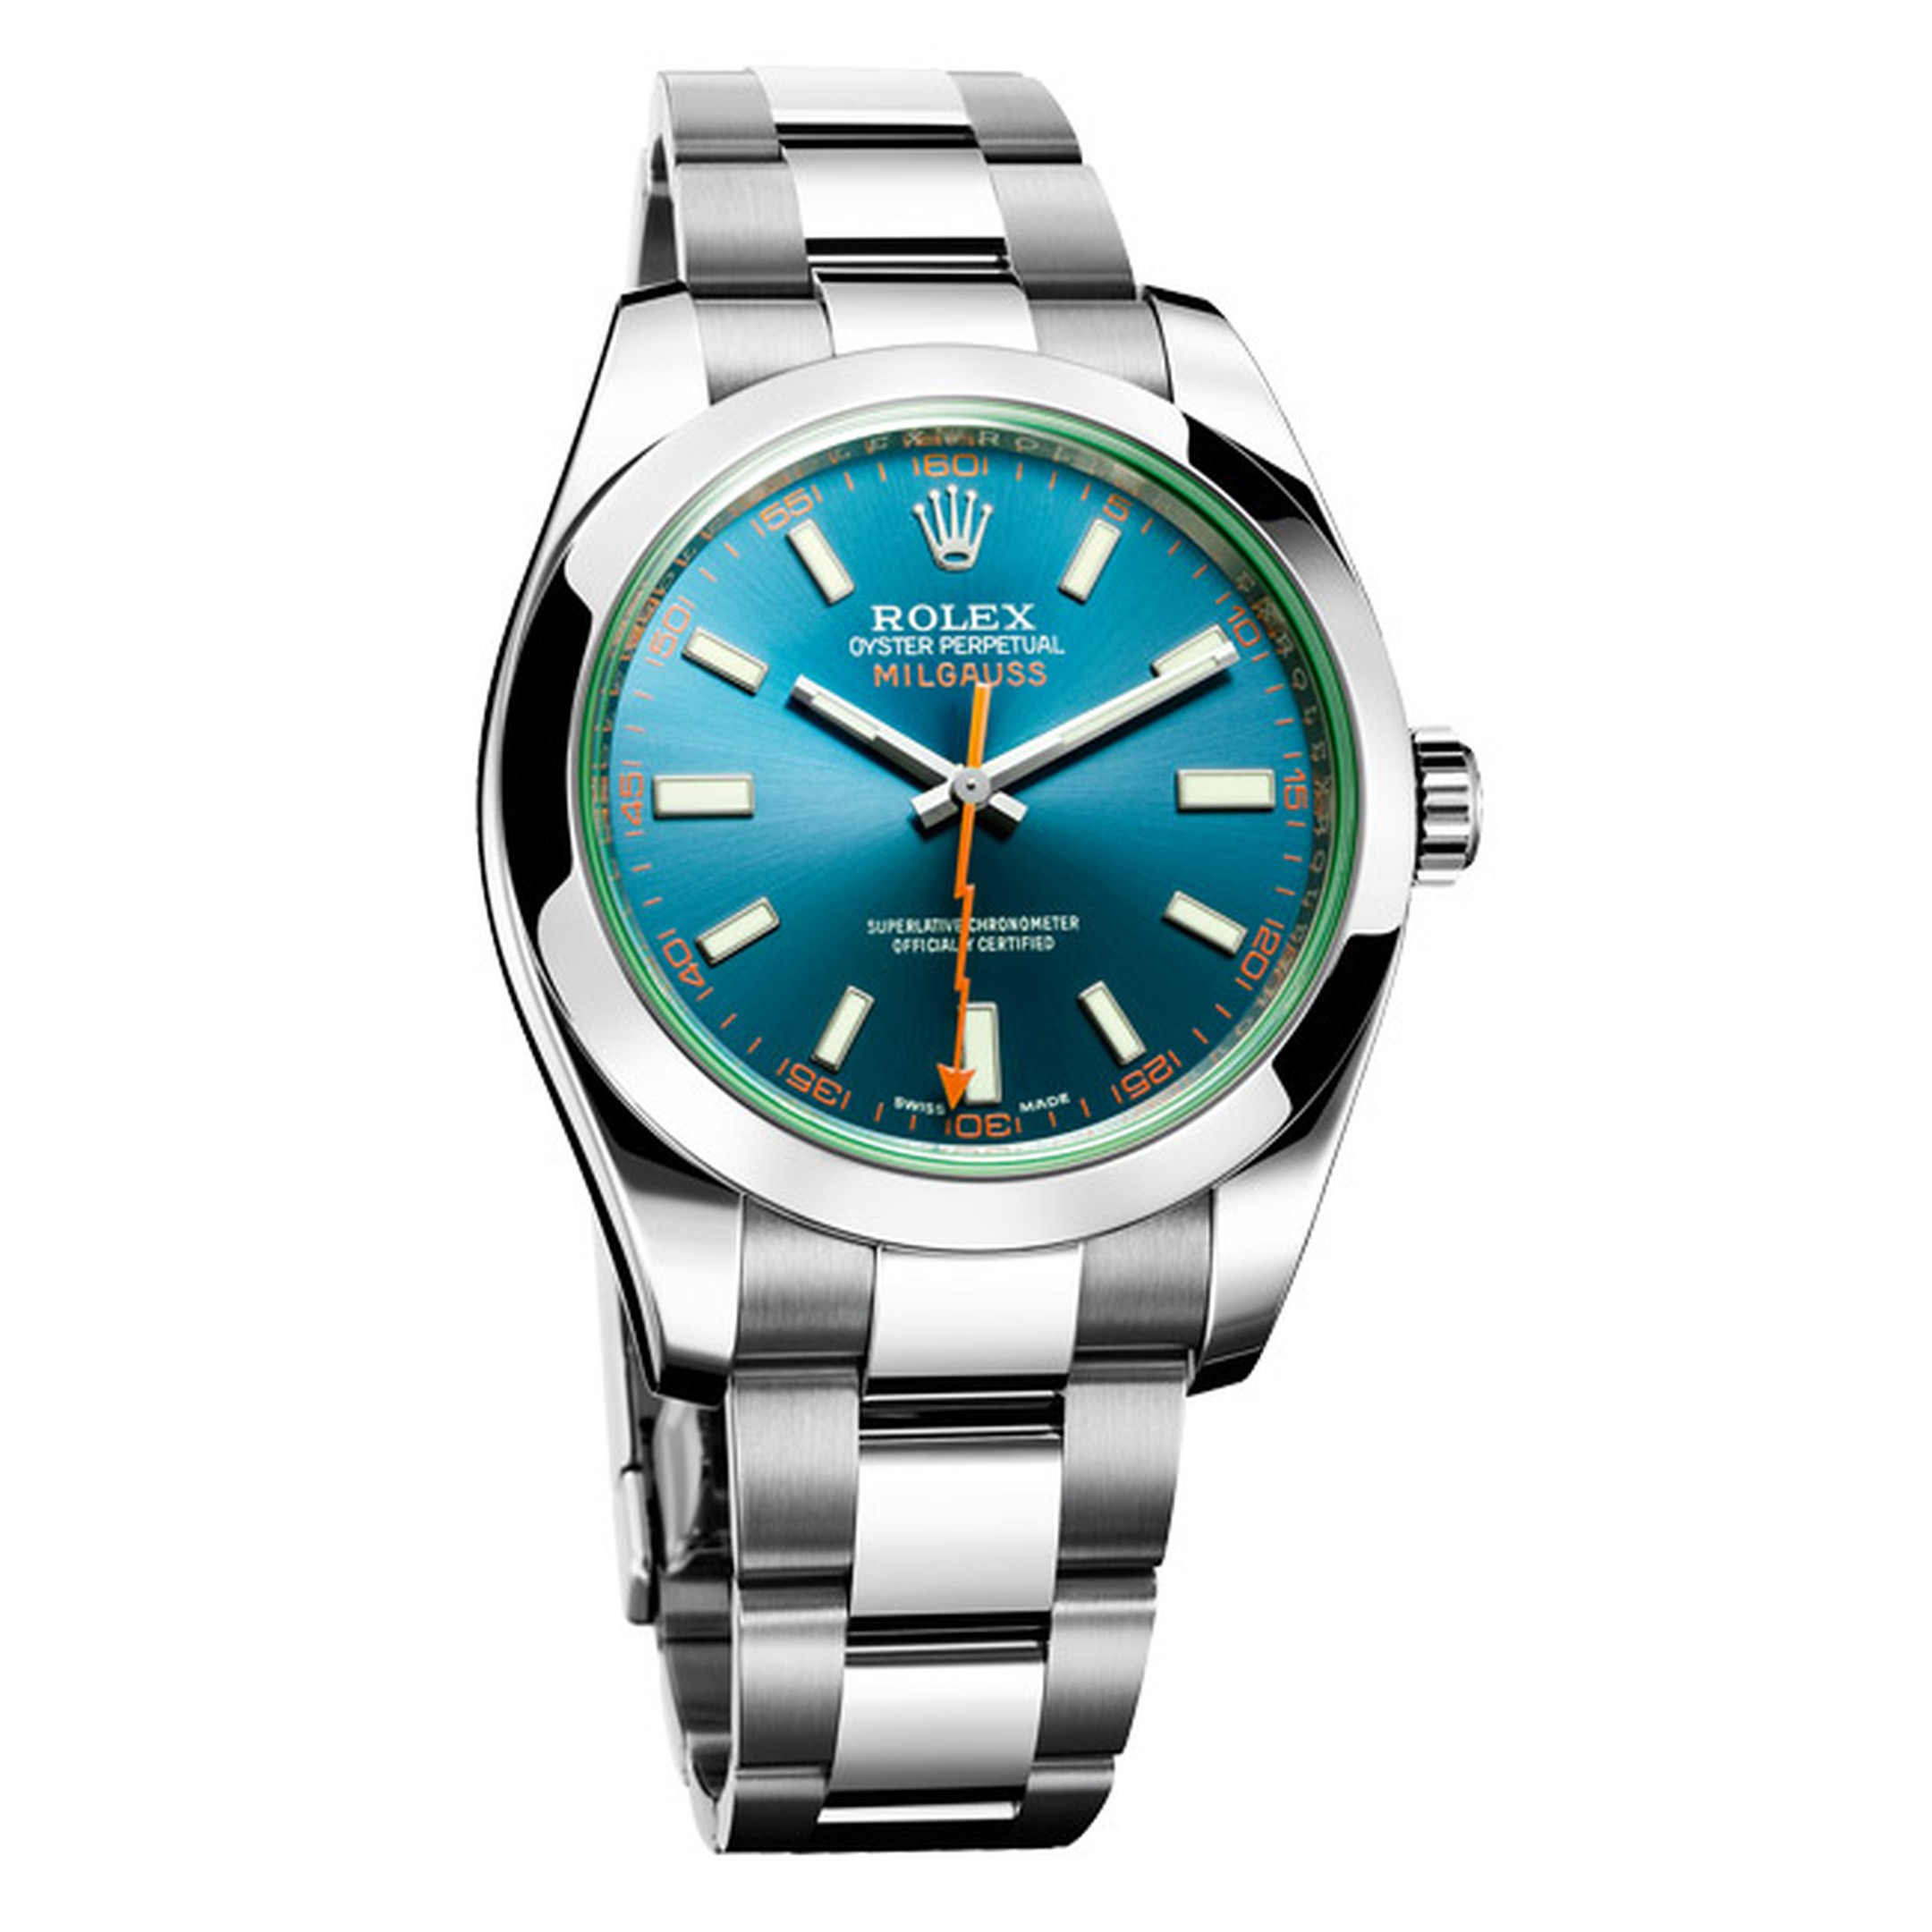 Rolex Milgauss Z-blue watch